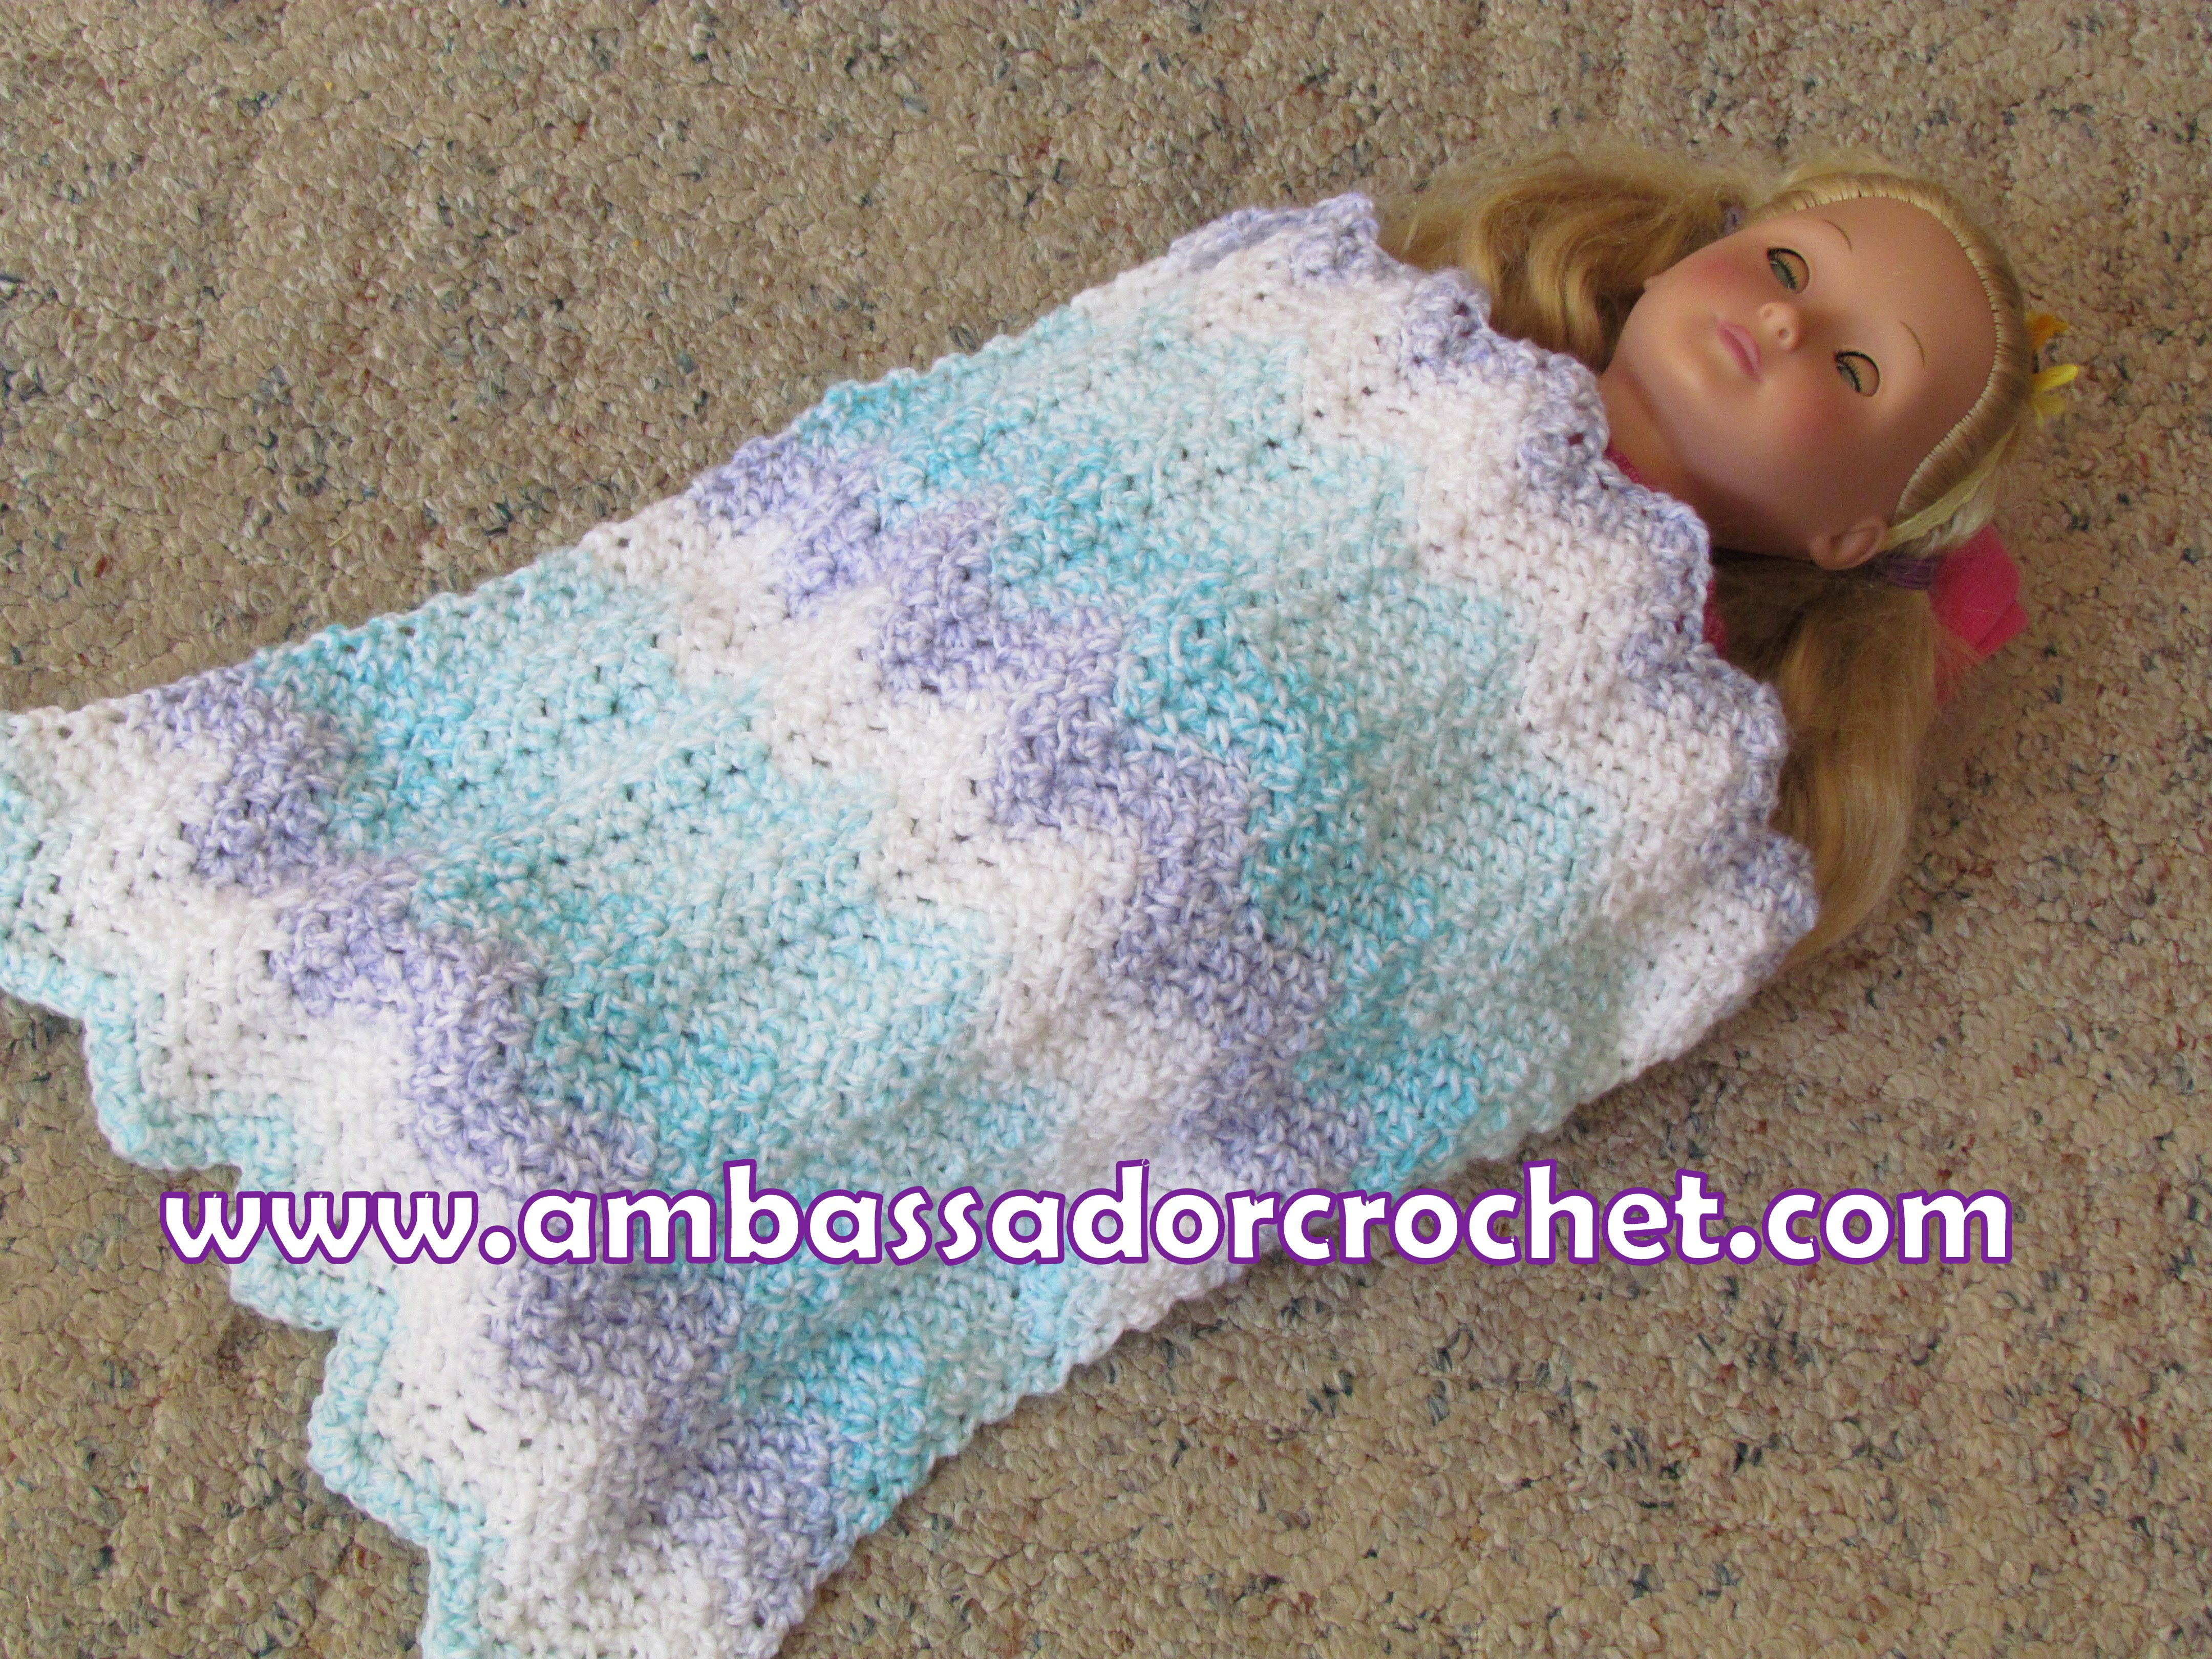 Free crochet patterns to print 18 doll blanket free crochet free crochet patterns to print 18 doll blanket free crochet pattern ambassador crochet bankloansurffo Choice Image